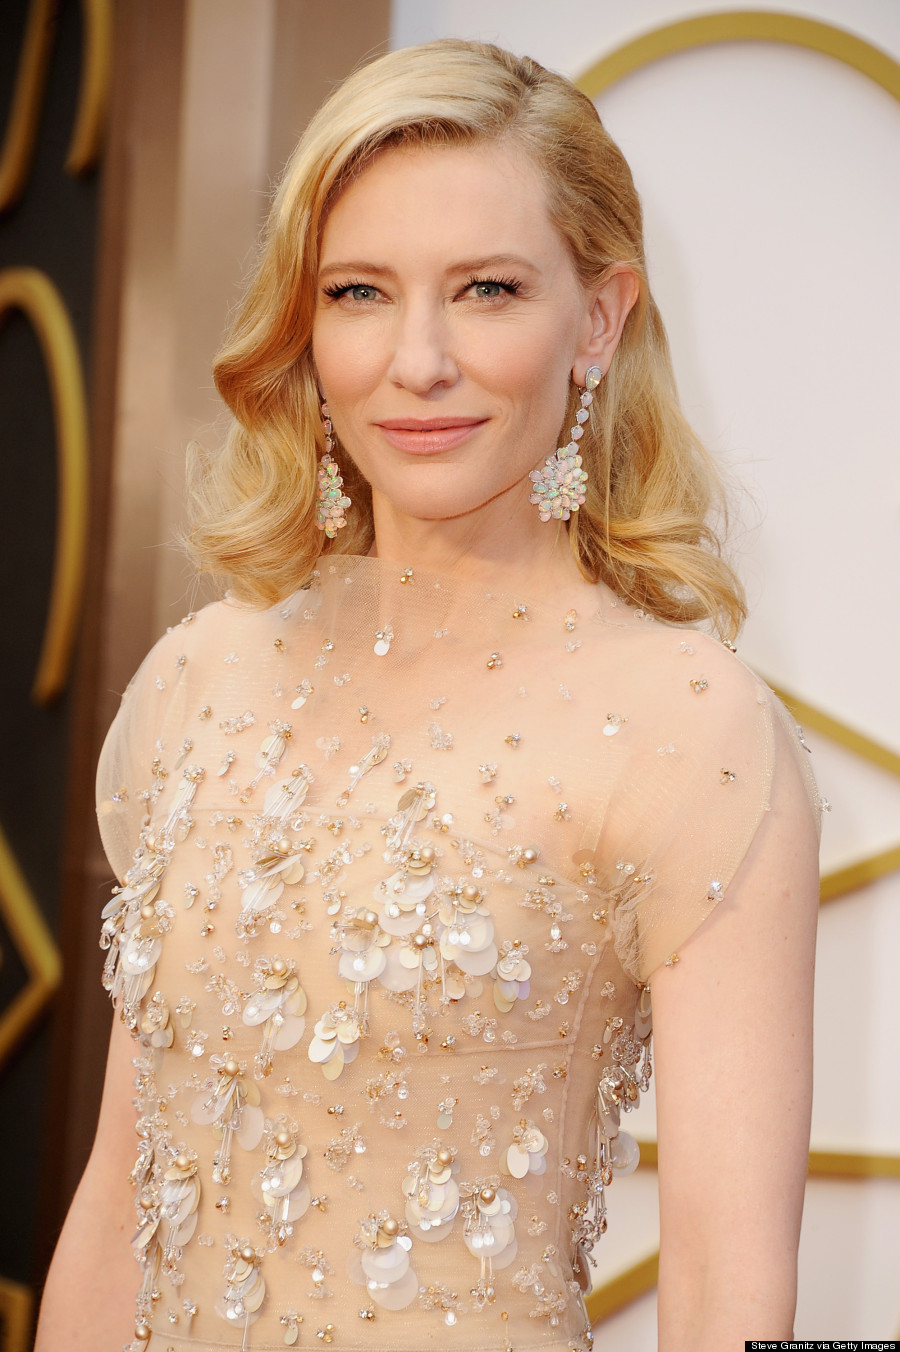 Most Expensive Jewelry Brands | Cate Blanchett wearing jewelry by Chopard